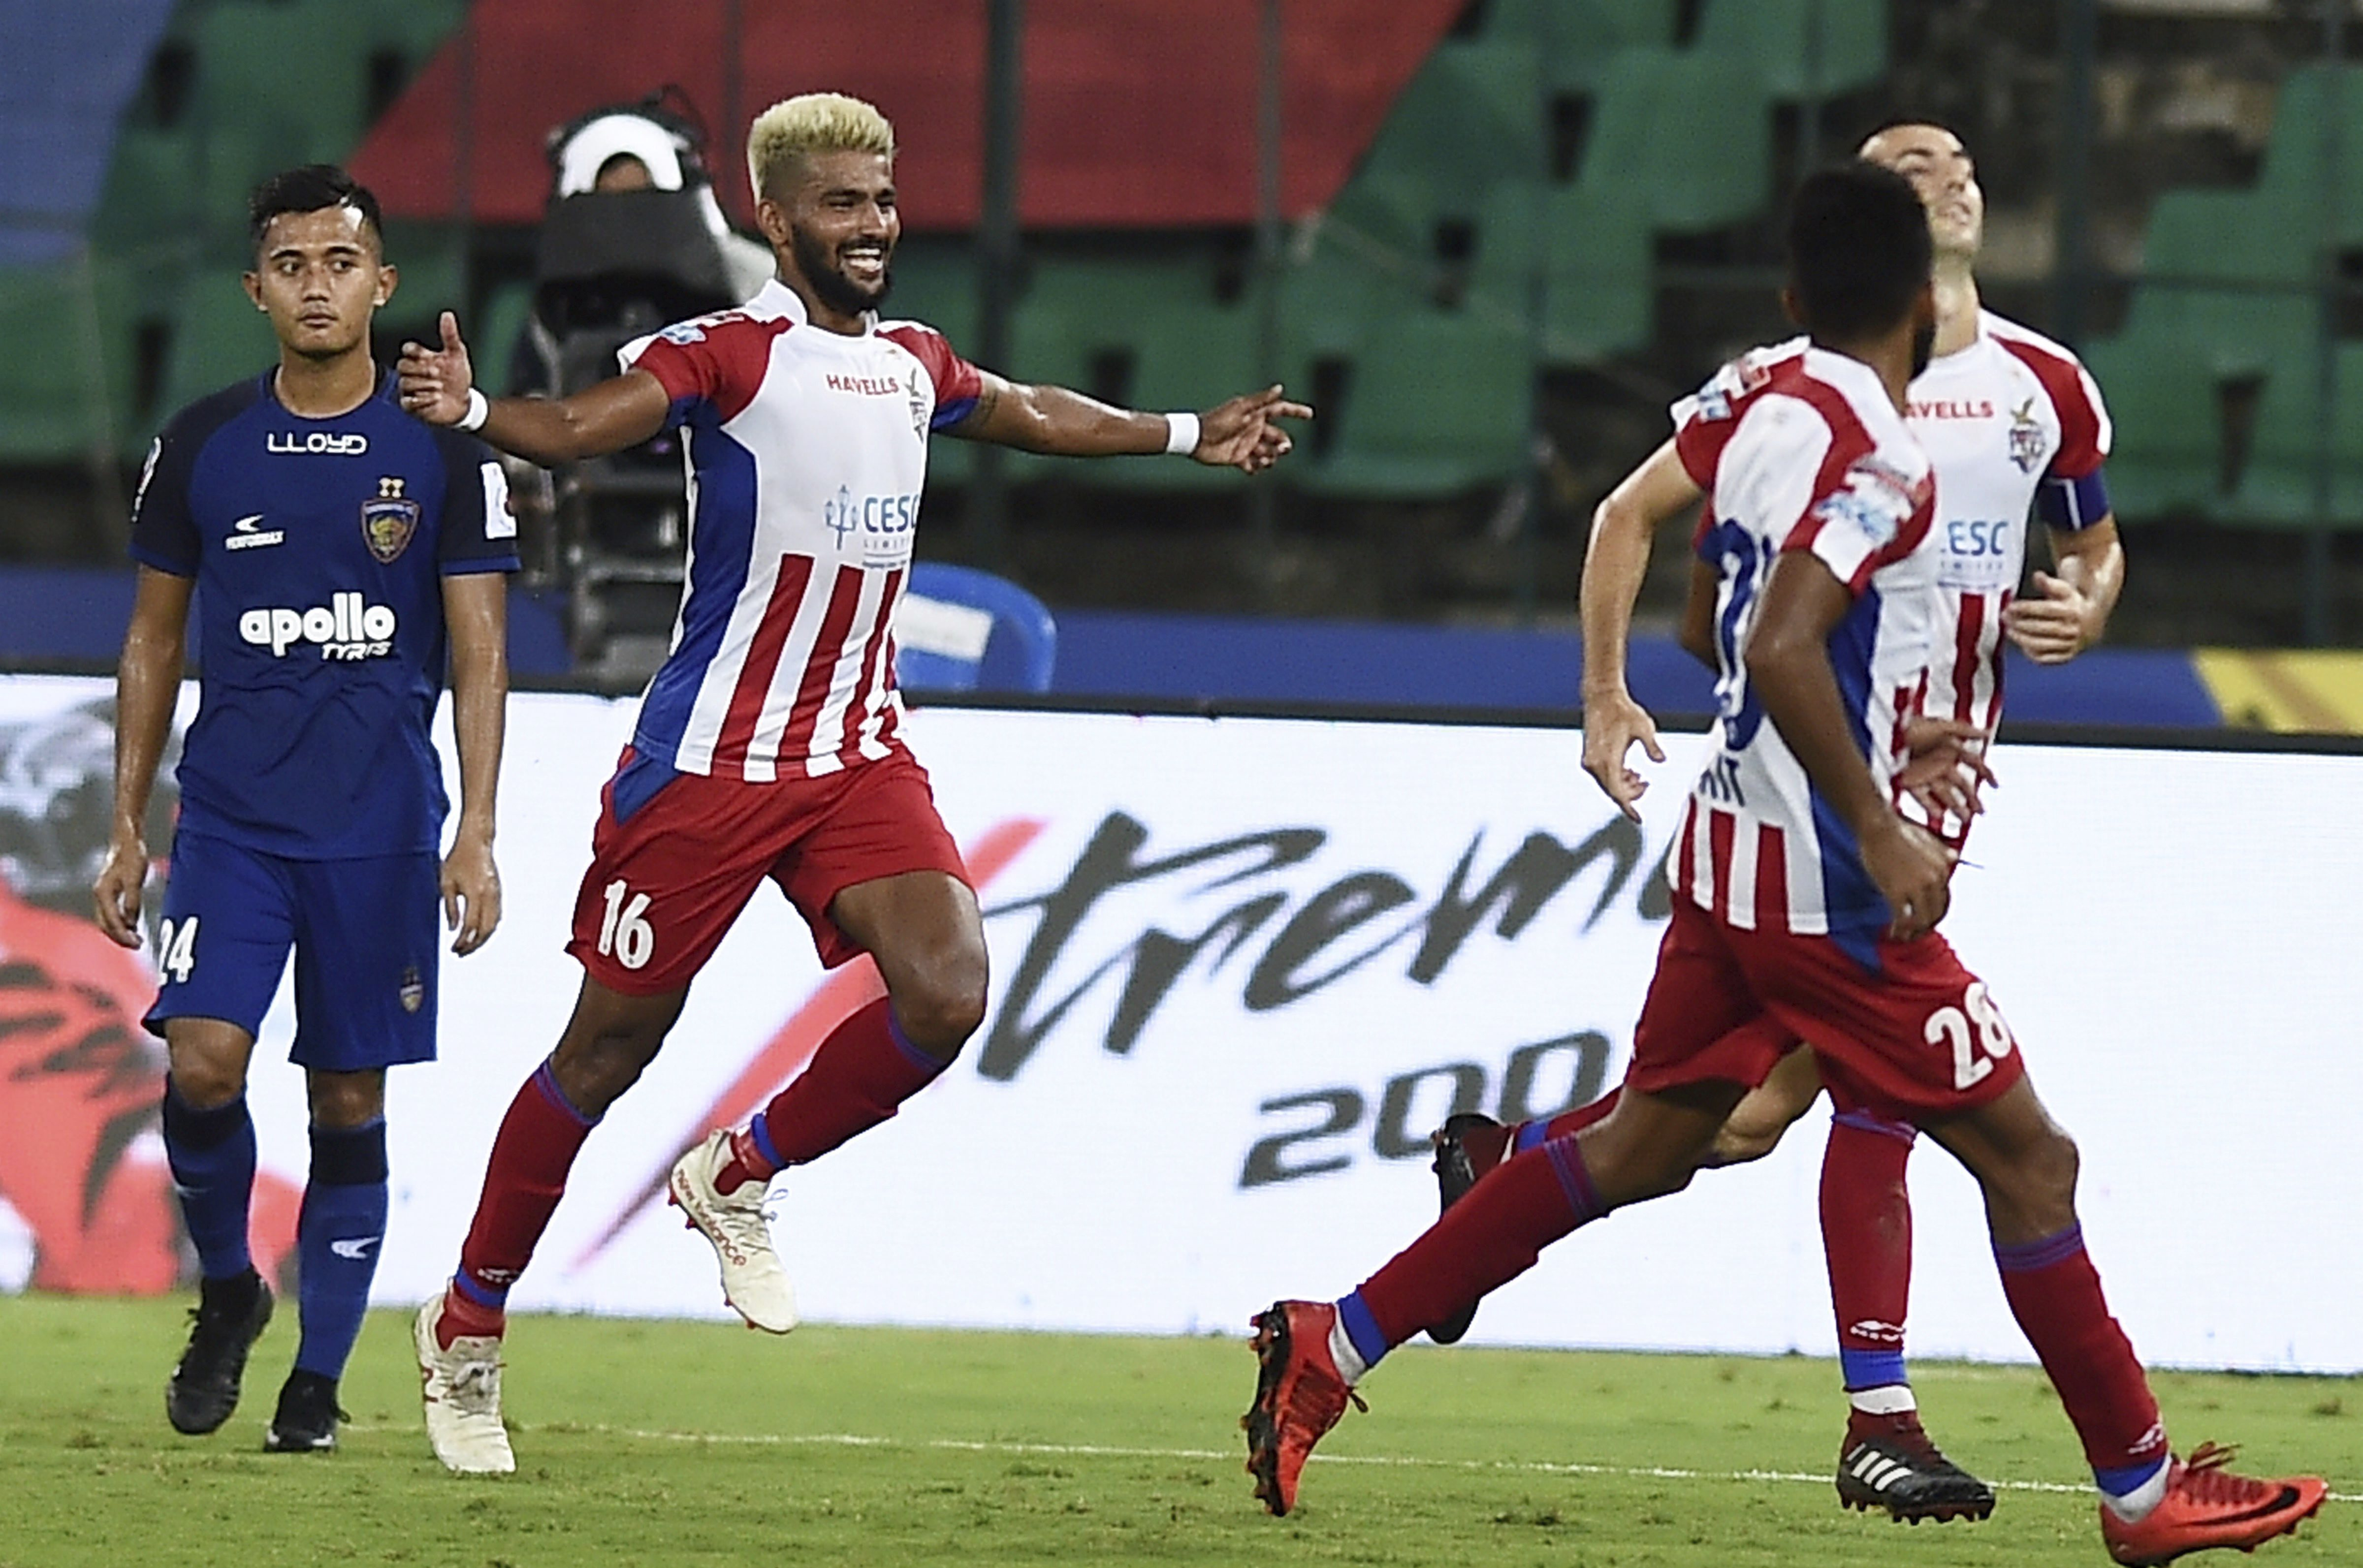 Players of Atletico De Kolkata celebrate a goal against Chennaiyin FC (Blue jersey) during their match at the 5th edition of ISL football tournament at Jawaharlal Nehru Stadium in Chennai - PTI